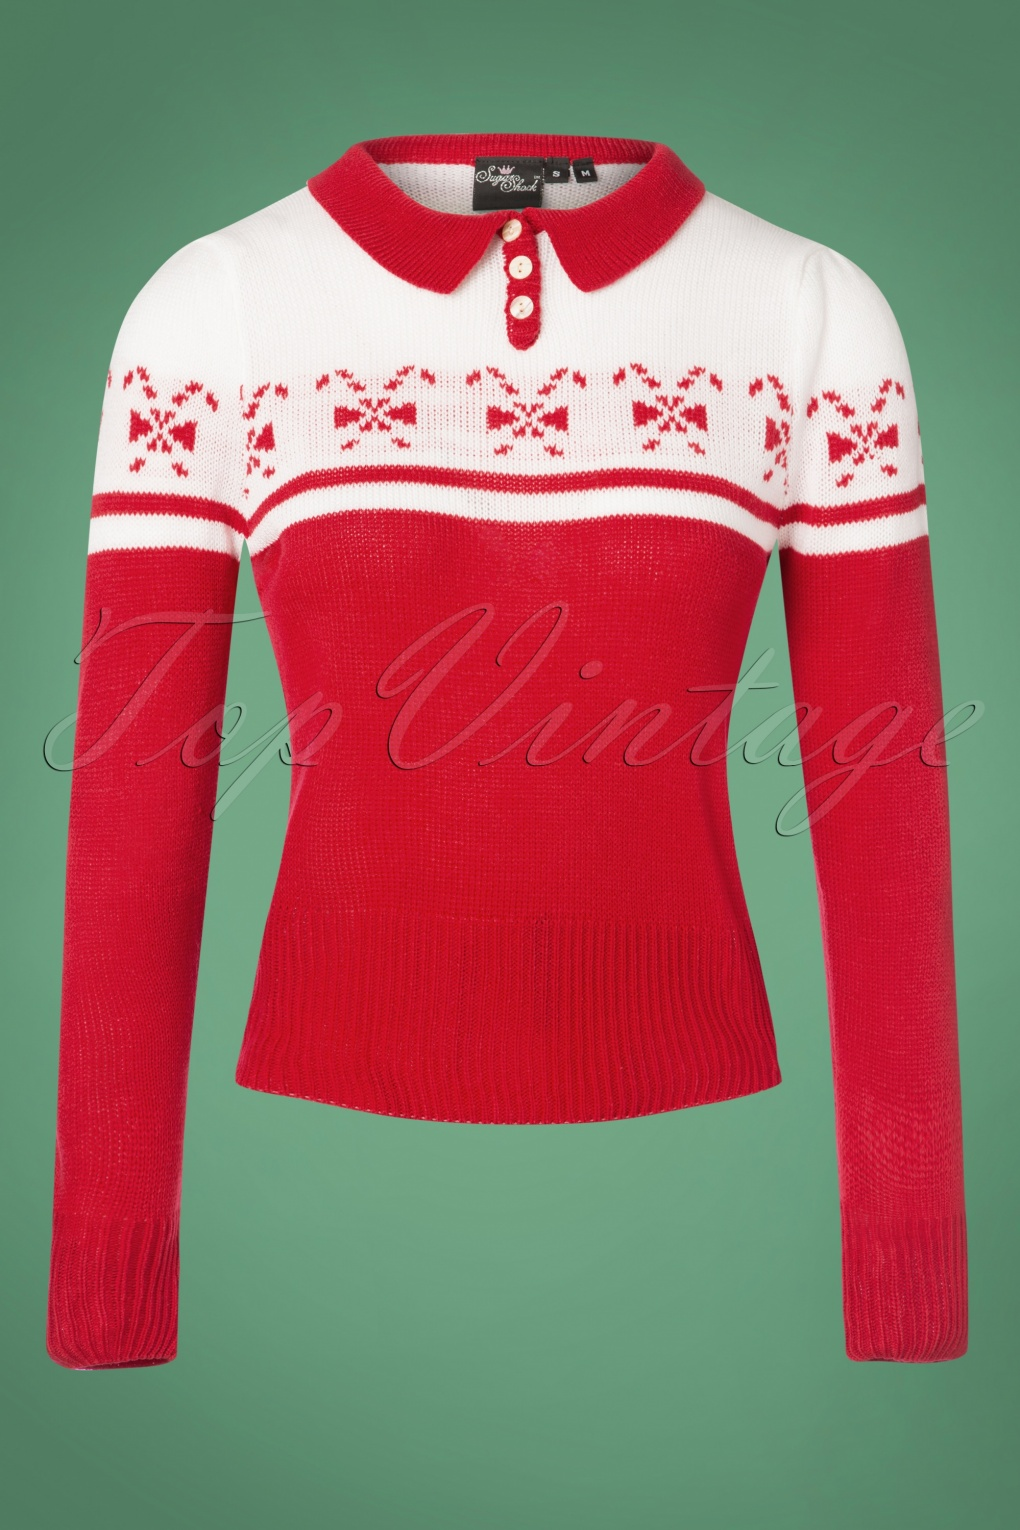 1940s Dresses and Clothing UK | 40s Shoes UK 40s Katika Candy Jumper in Red and White £33.74 AT vintagedancer.com